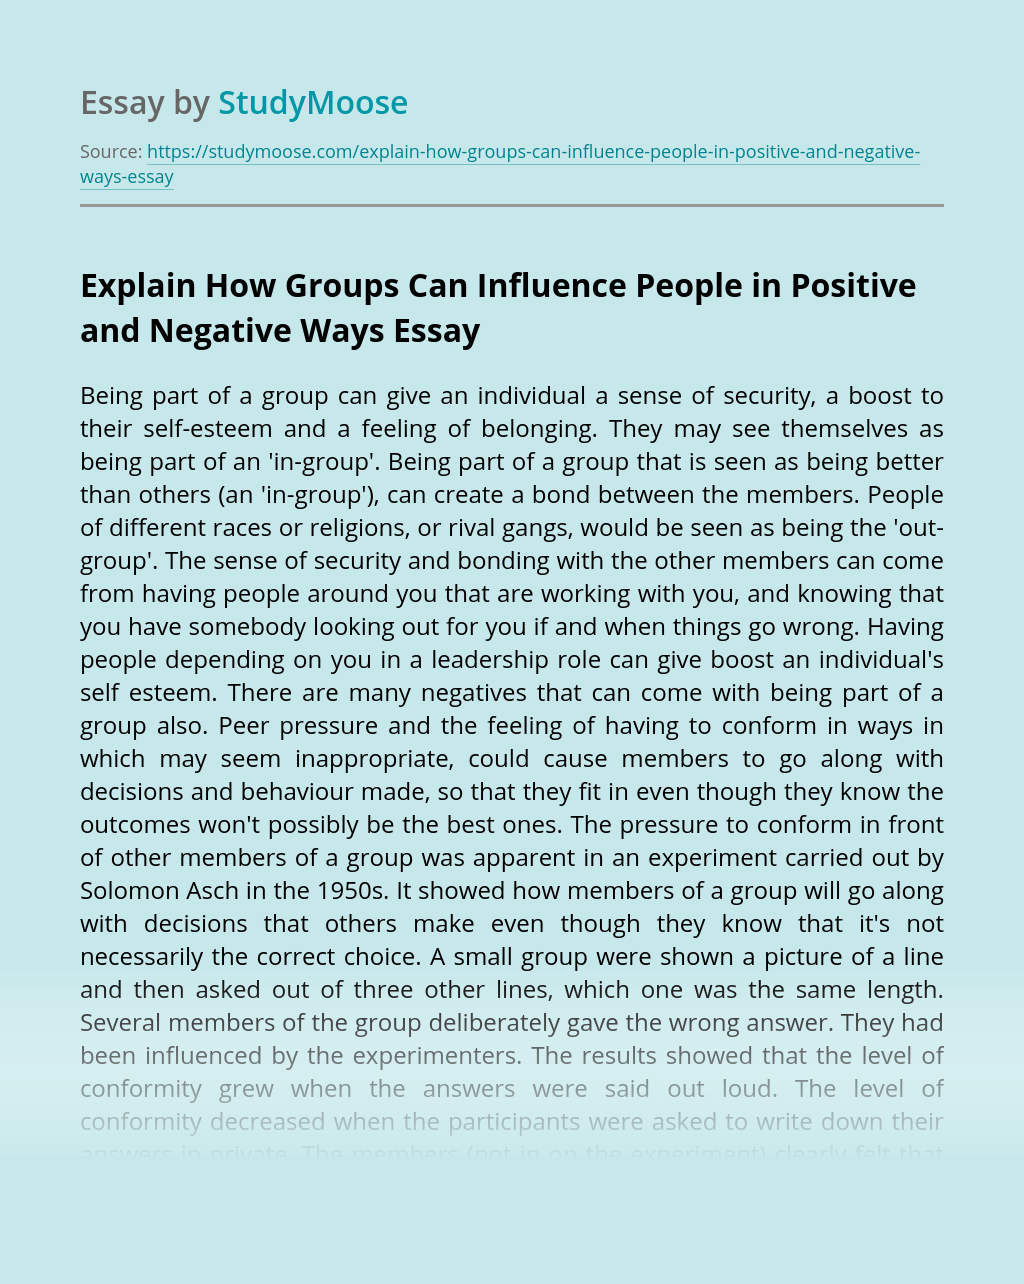 Explain How Groups Can Influence People in Positive and Negative Ways